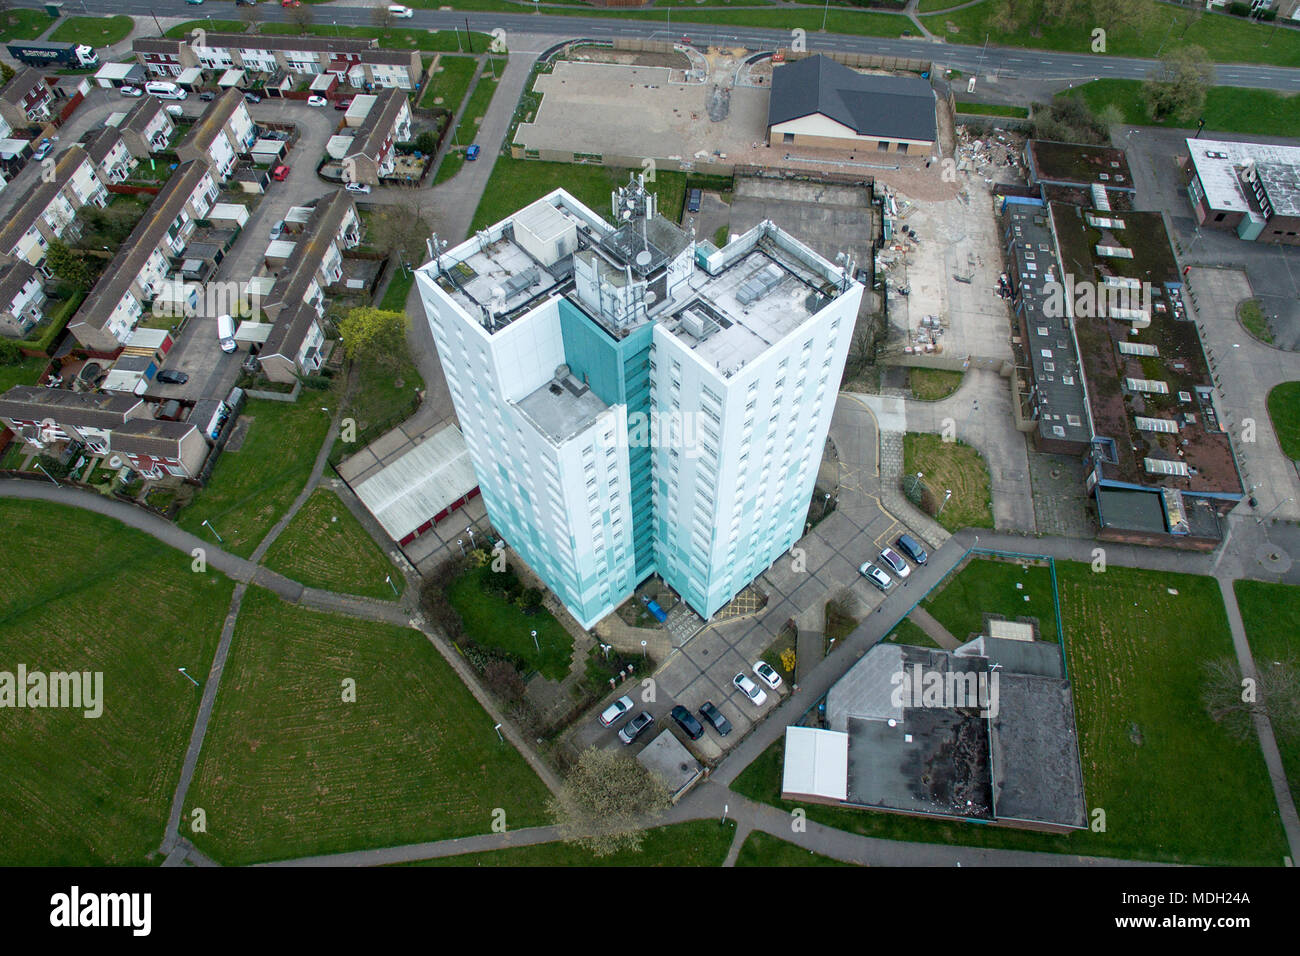 Padstow house, Bransholme, High rise social housing - Stock Image